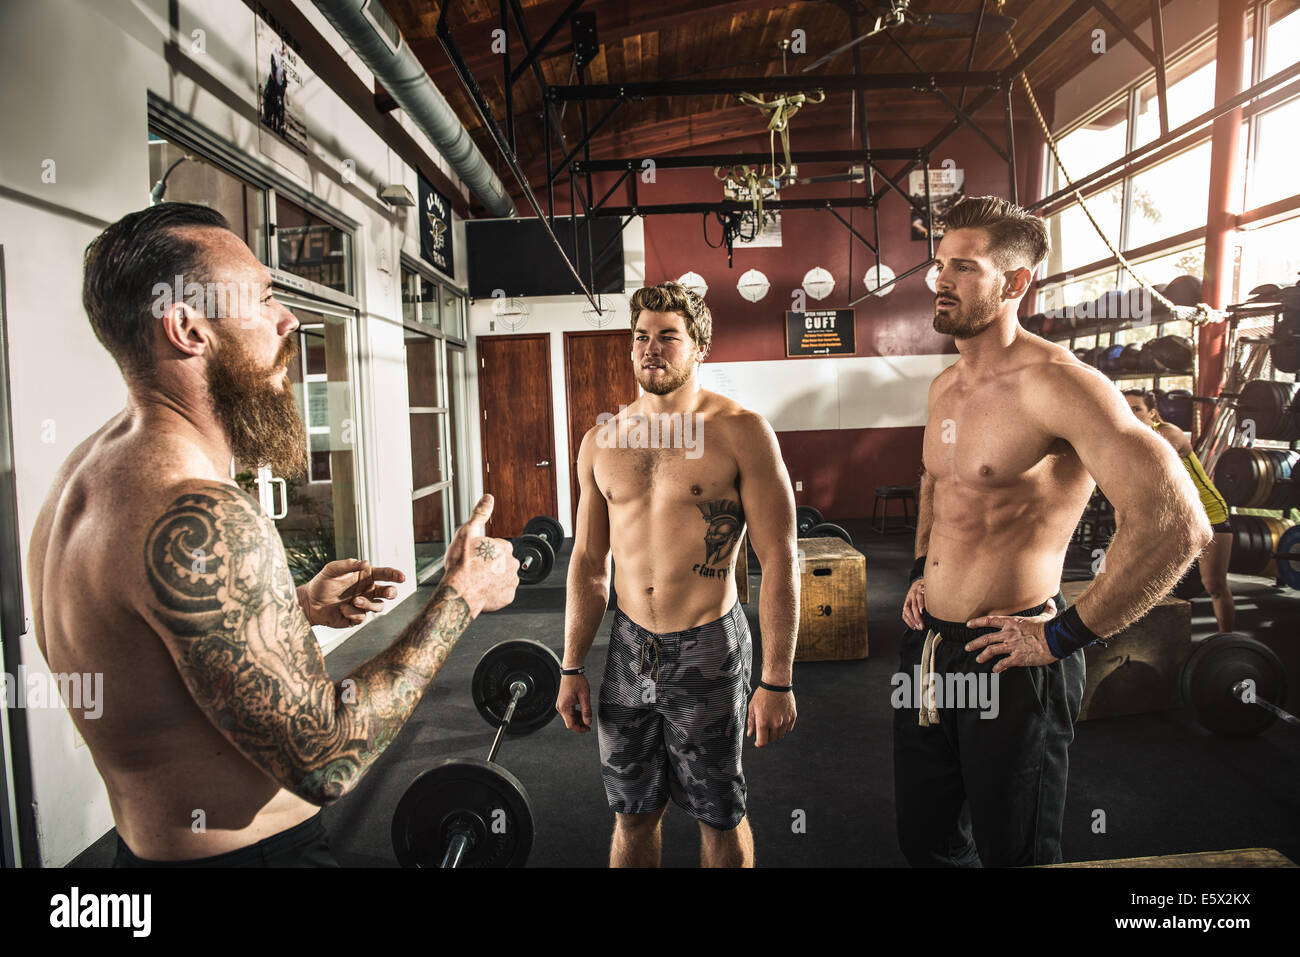 Bodybuilders chatting in gym - Stock Image